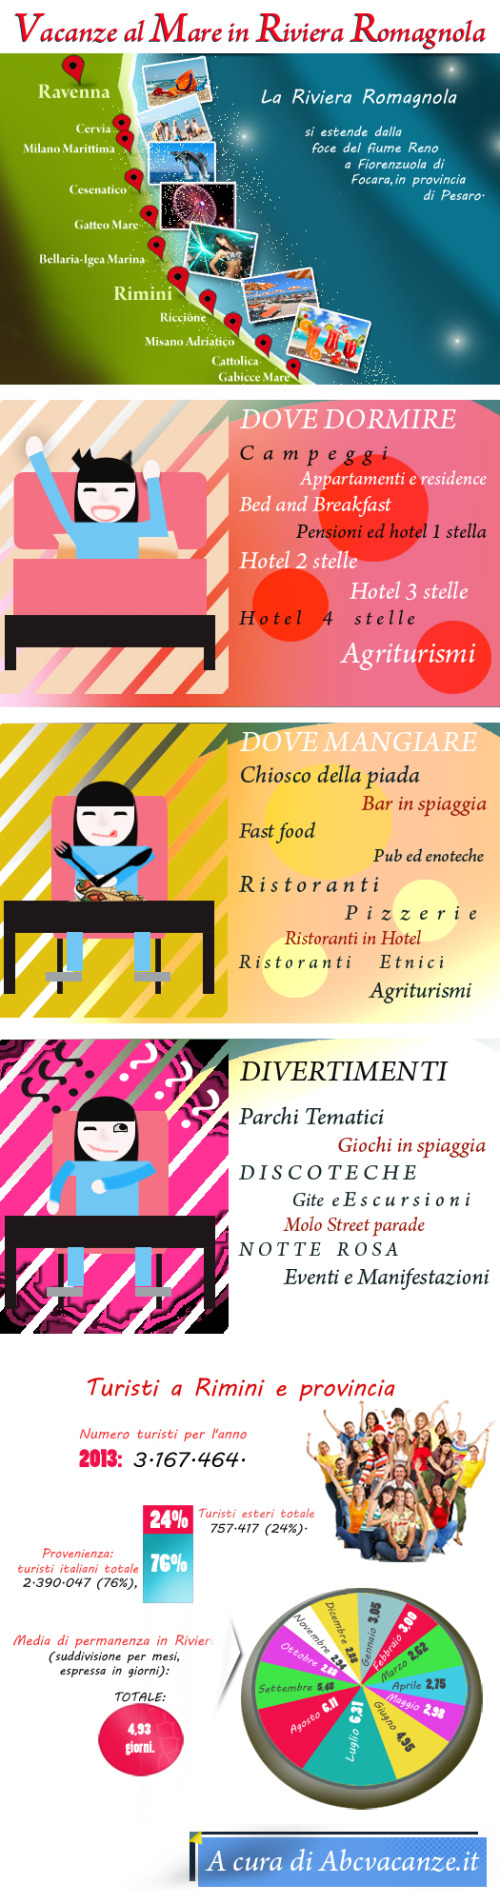 info-grafica-abcvacanze-it